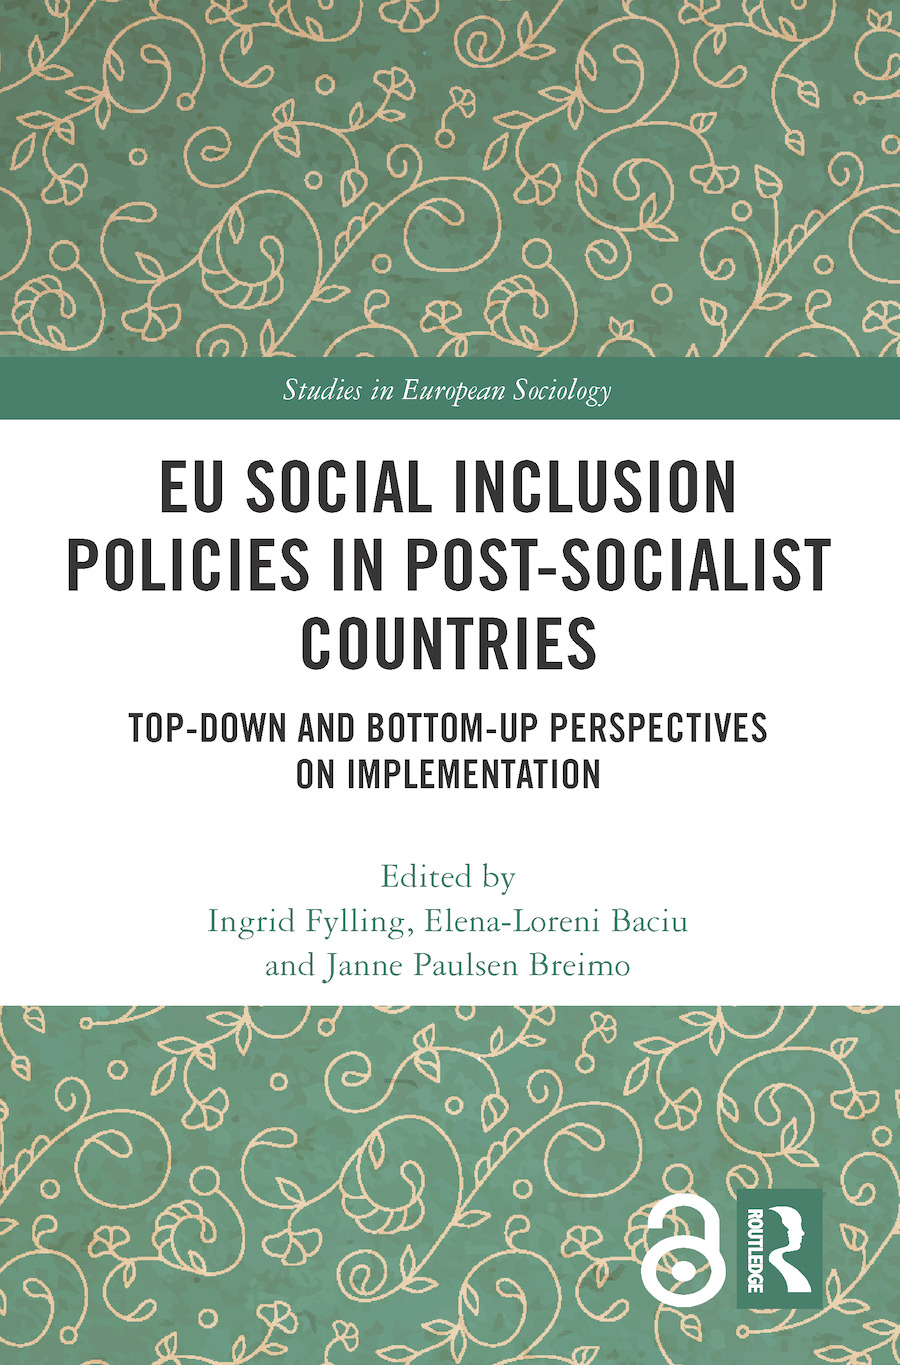 EU Social Inclusion Policies in Post-Socialist Countries: Top-Down and Bottom-Up Perspectives on Implementation, 1st Edition (Hardback) book cover